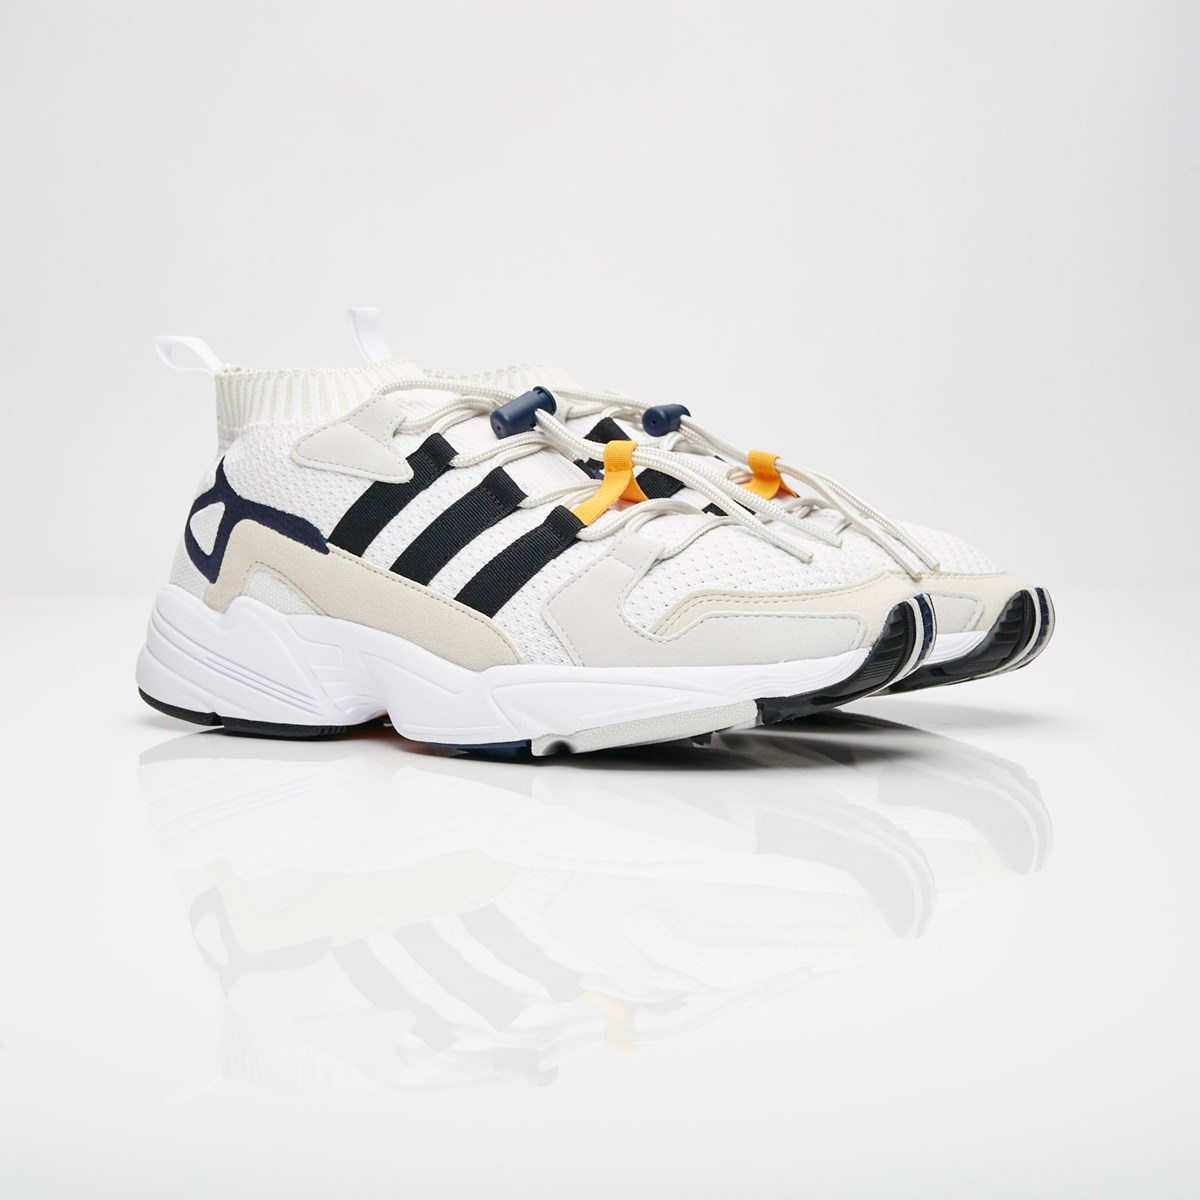 brand new 94cb8 718bb adidas Falcon Workshop - Bc0695 - Sneakersnstuff   sneakers   streetwear  online since 1999